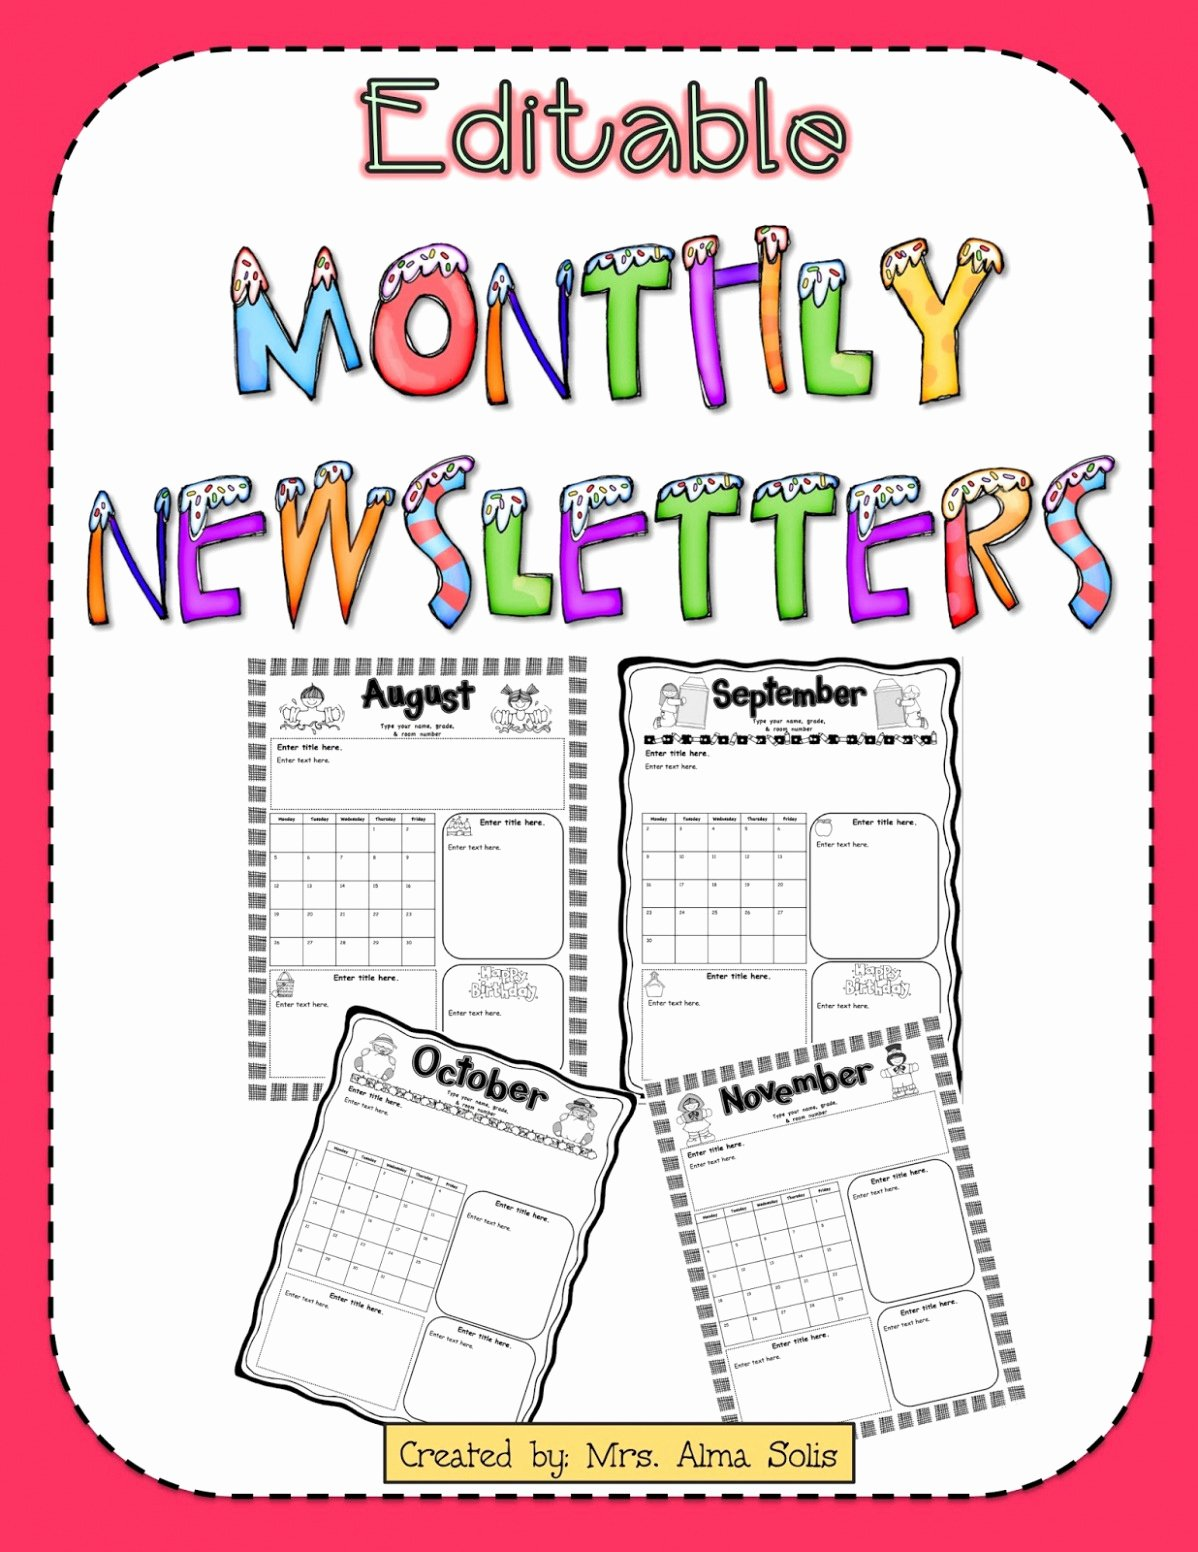 Free Printable Classroom Newsletter Templates Lovely Free Editable Newsletter Templates Reeviewer